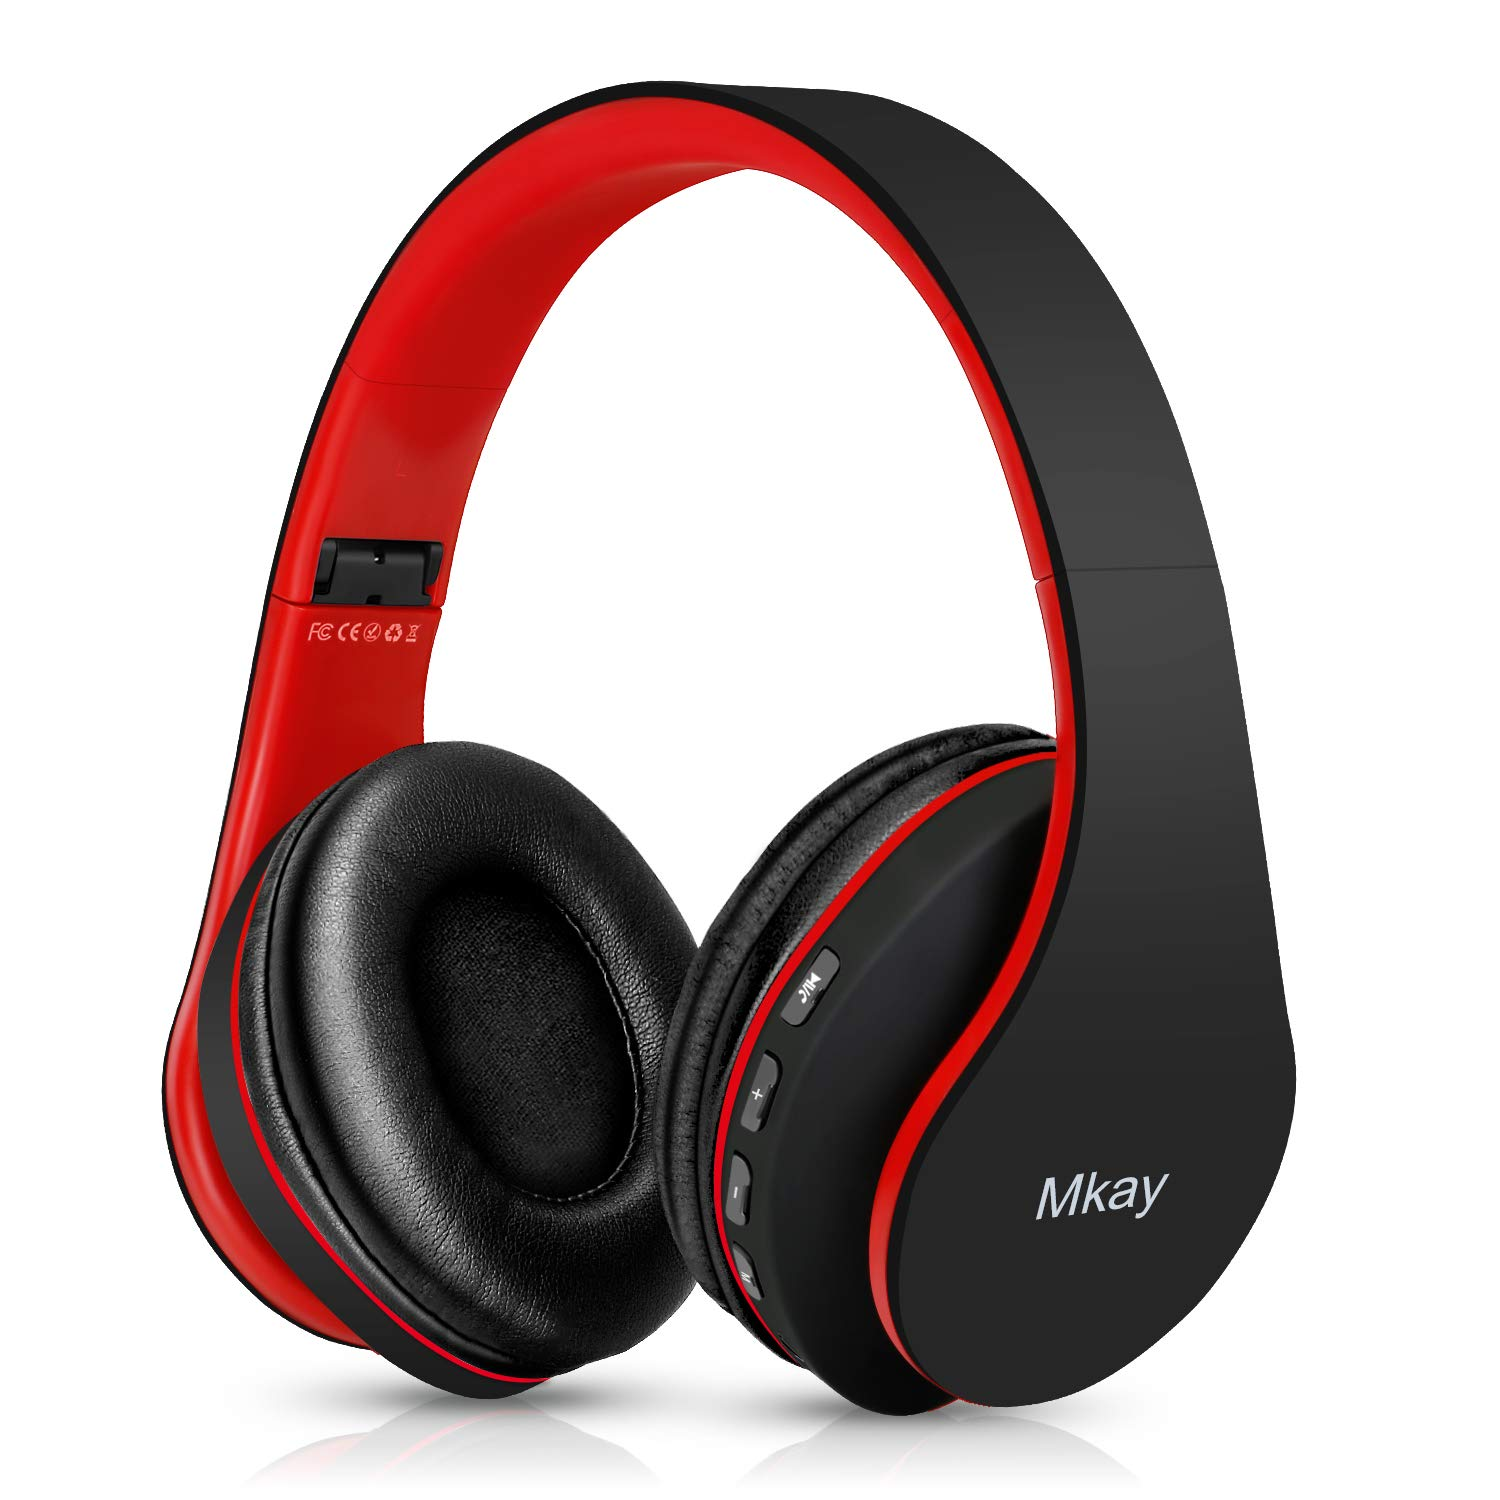 Bluetooth Headphones Wireless,MKay Over Ear Headset V5.0 with Microphone, Foldable Lightweight, Support Tf Card MP3 Mode and Fm Radio for Cellphones Laptop TV Black-Red